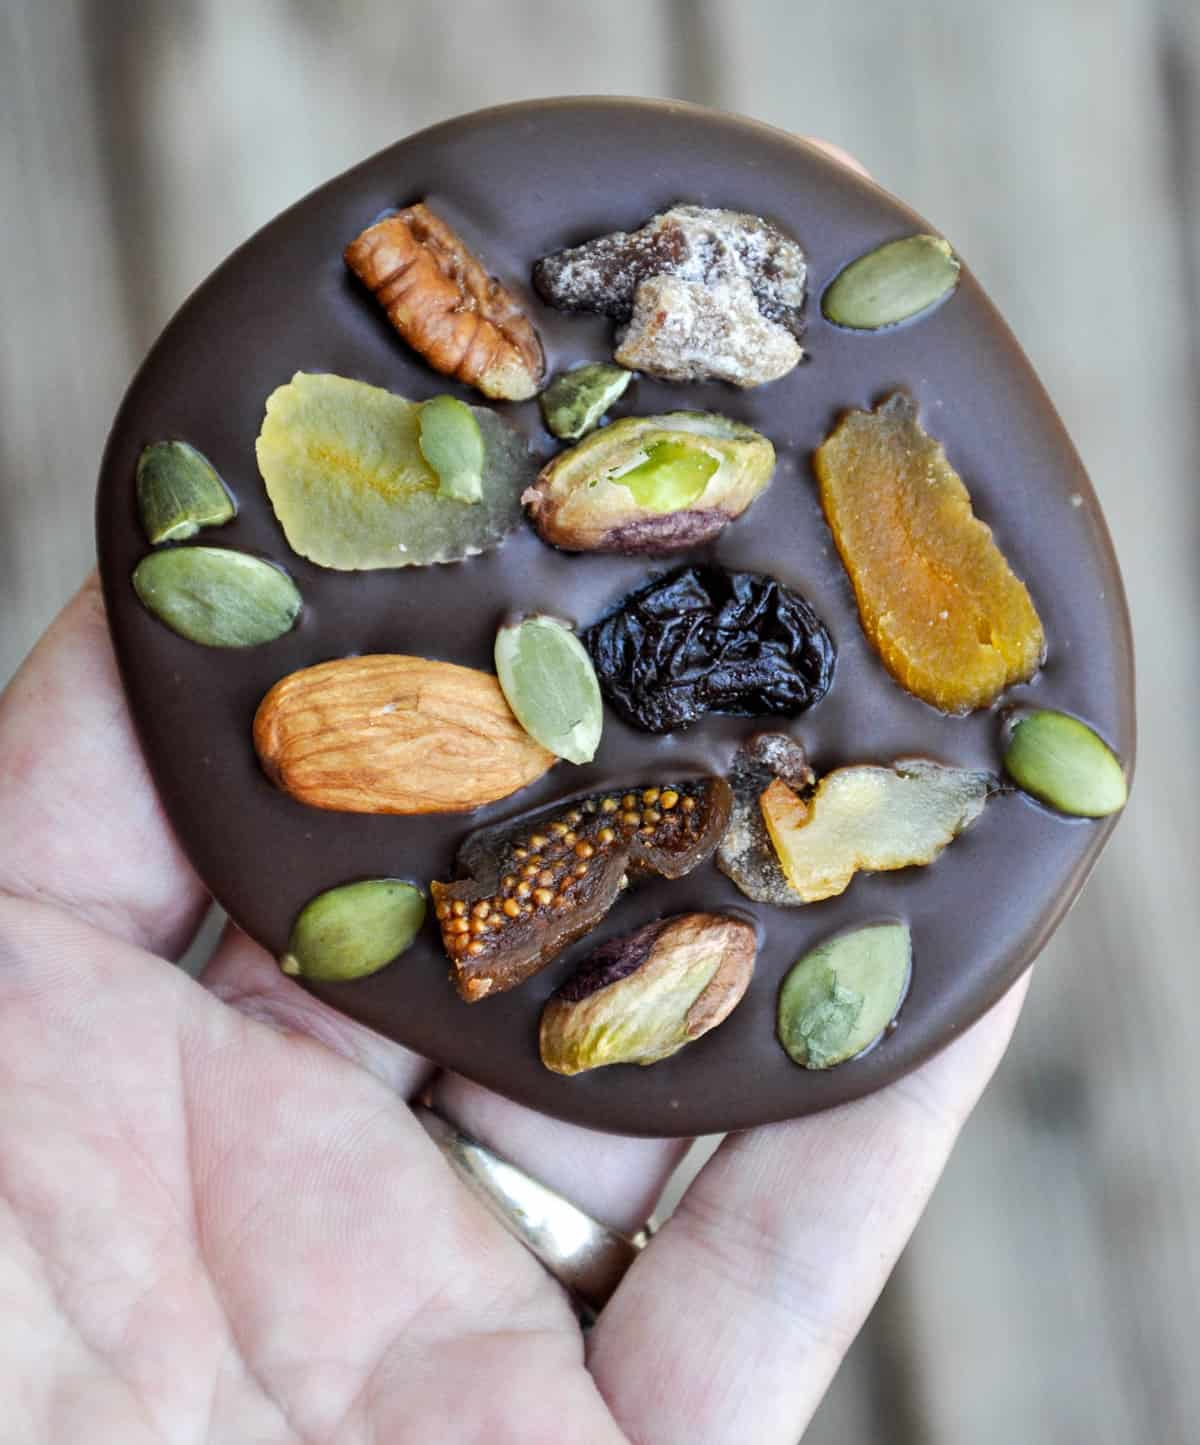 Dried Fruit and Nut Super Snack. Dark chocolate loaded with healthy fruit and nuts to boost your energy all while curbing that chocolate craving